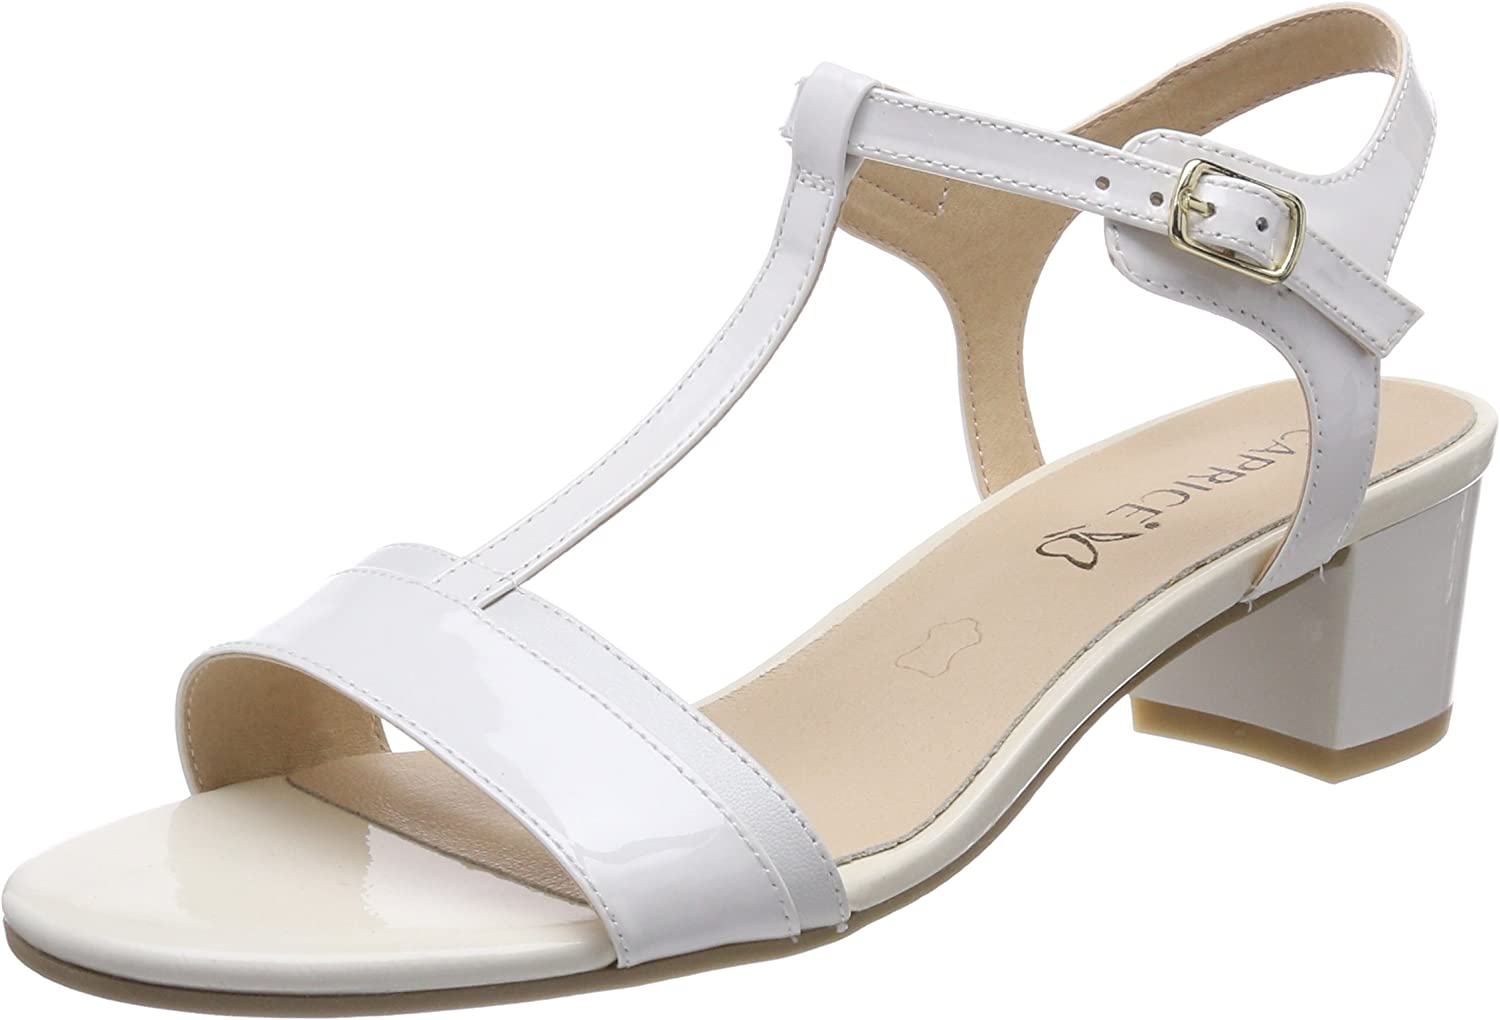 Caprice Women's Now on sale Slingback Max 70% OFF Back Sandals Sling